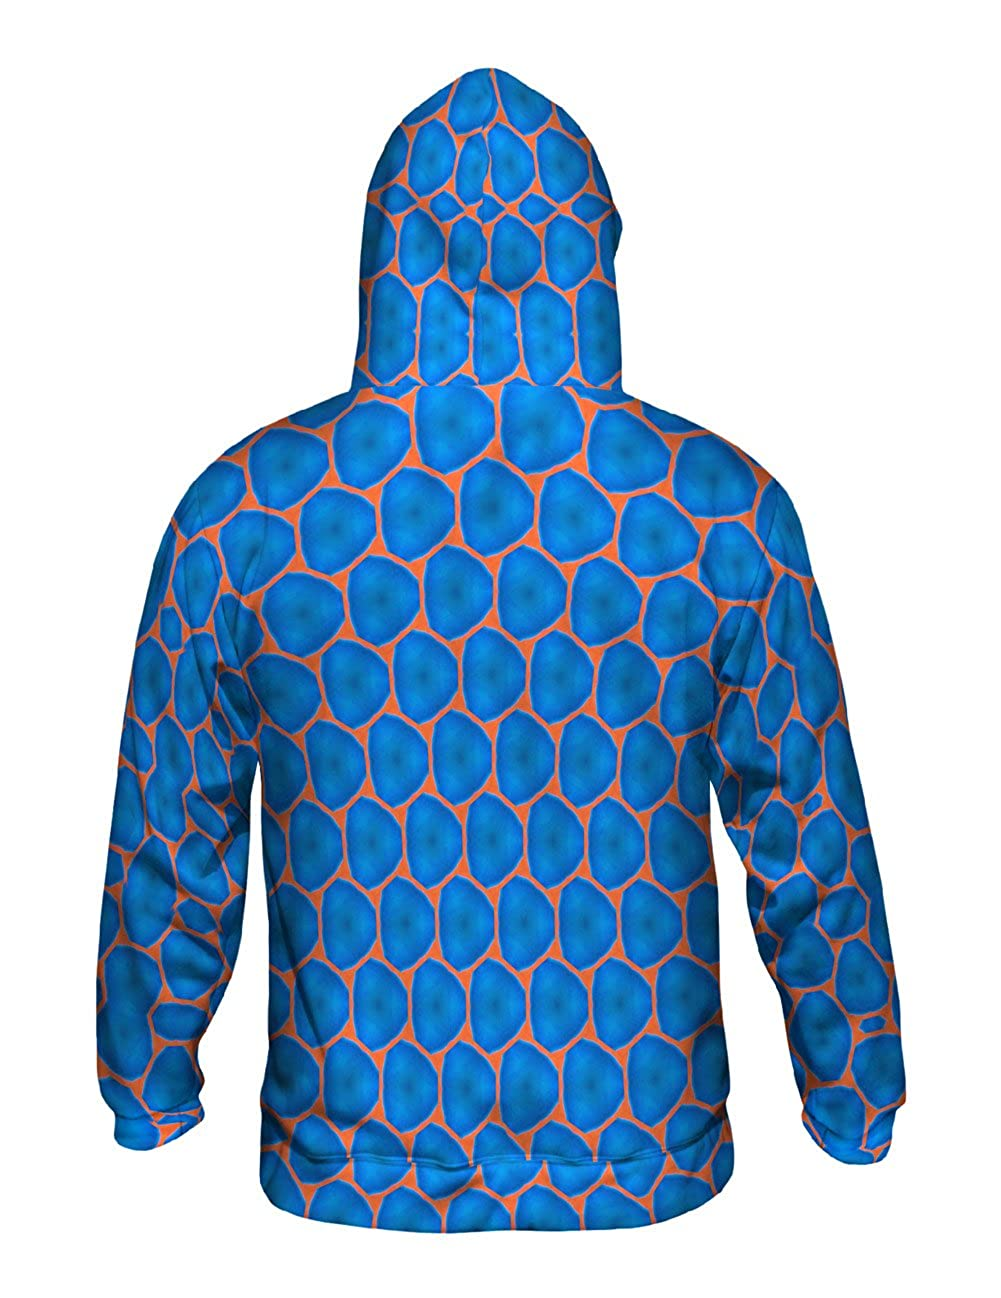 Yizzam Blue Orange Colorful Triangles Mens Hoodie Sweater Allover Print